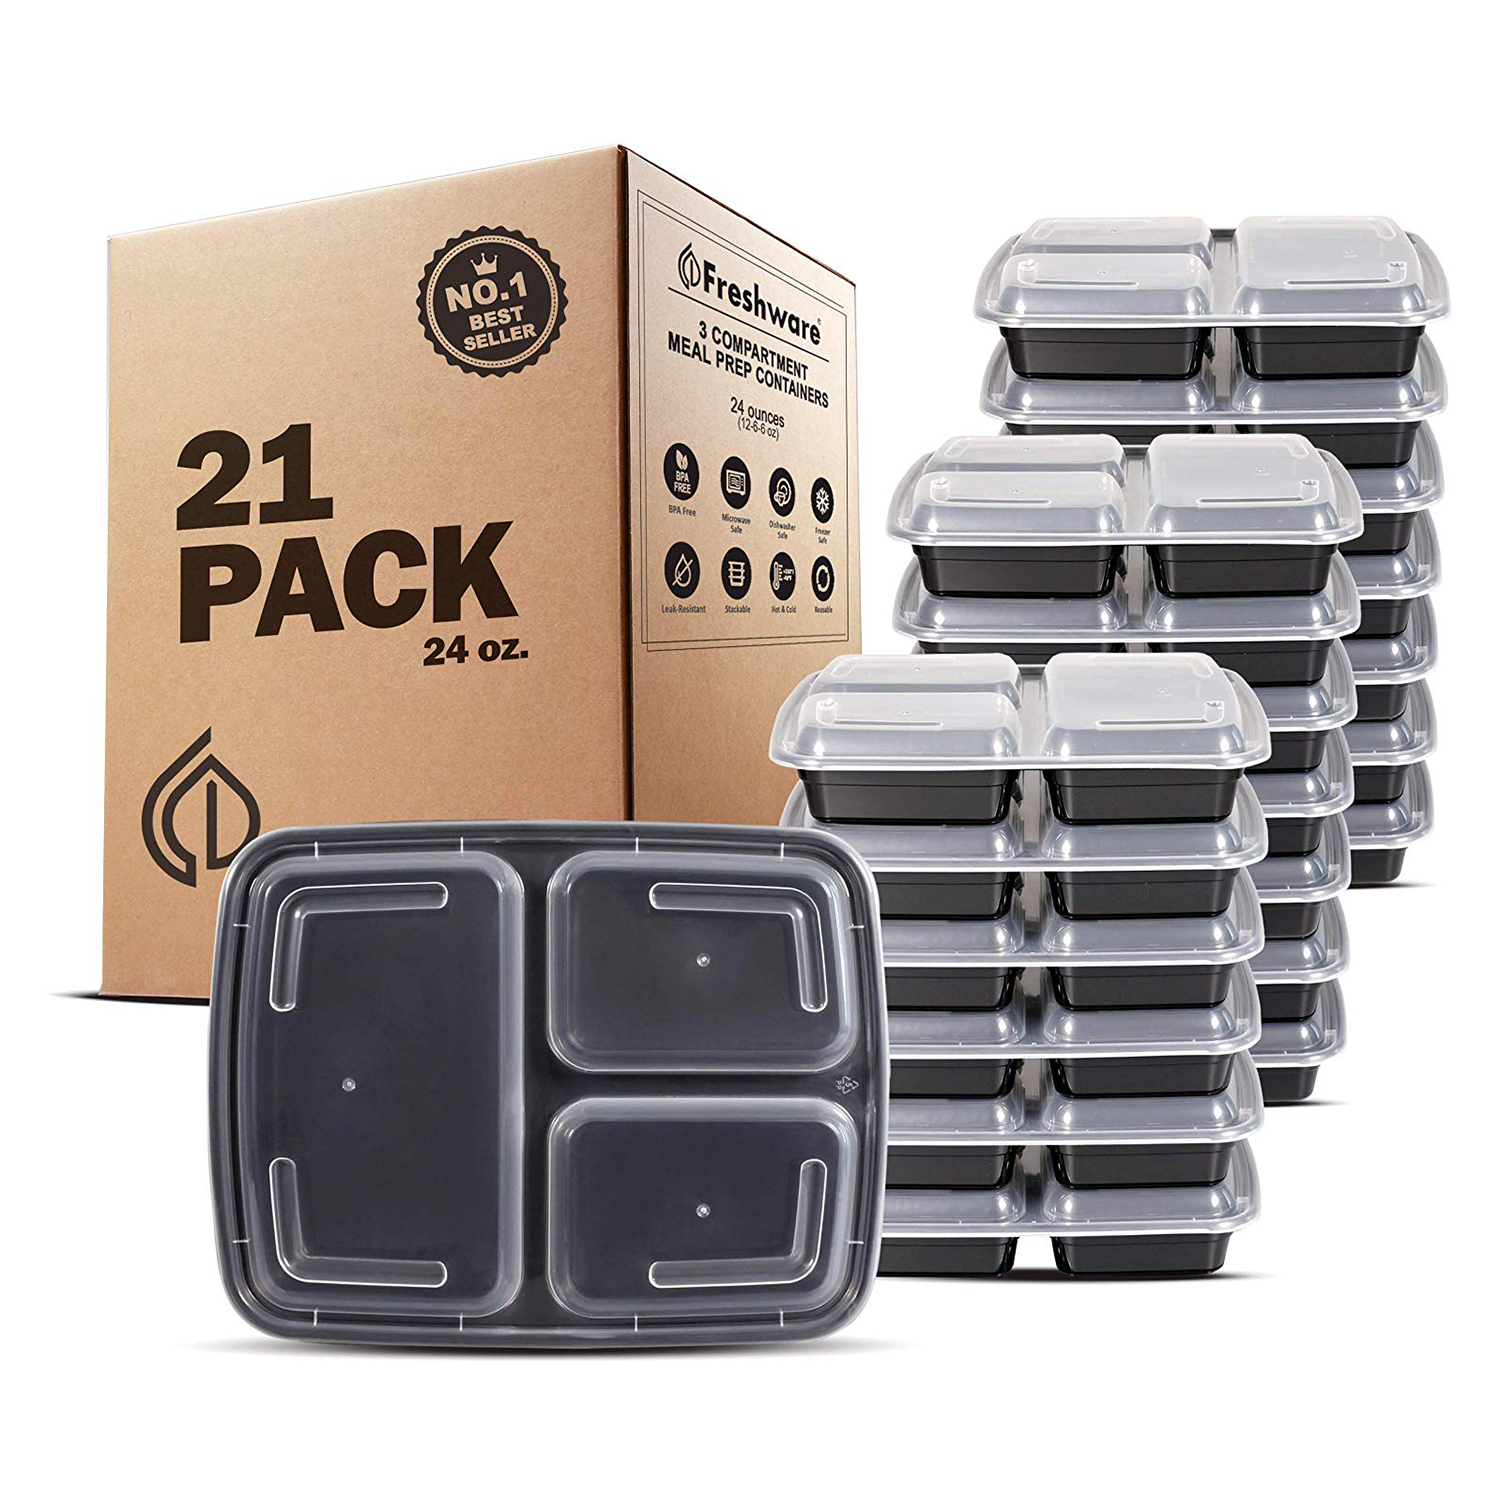 Freshware Meal Prep Containers 21 Pack